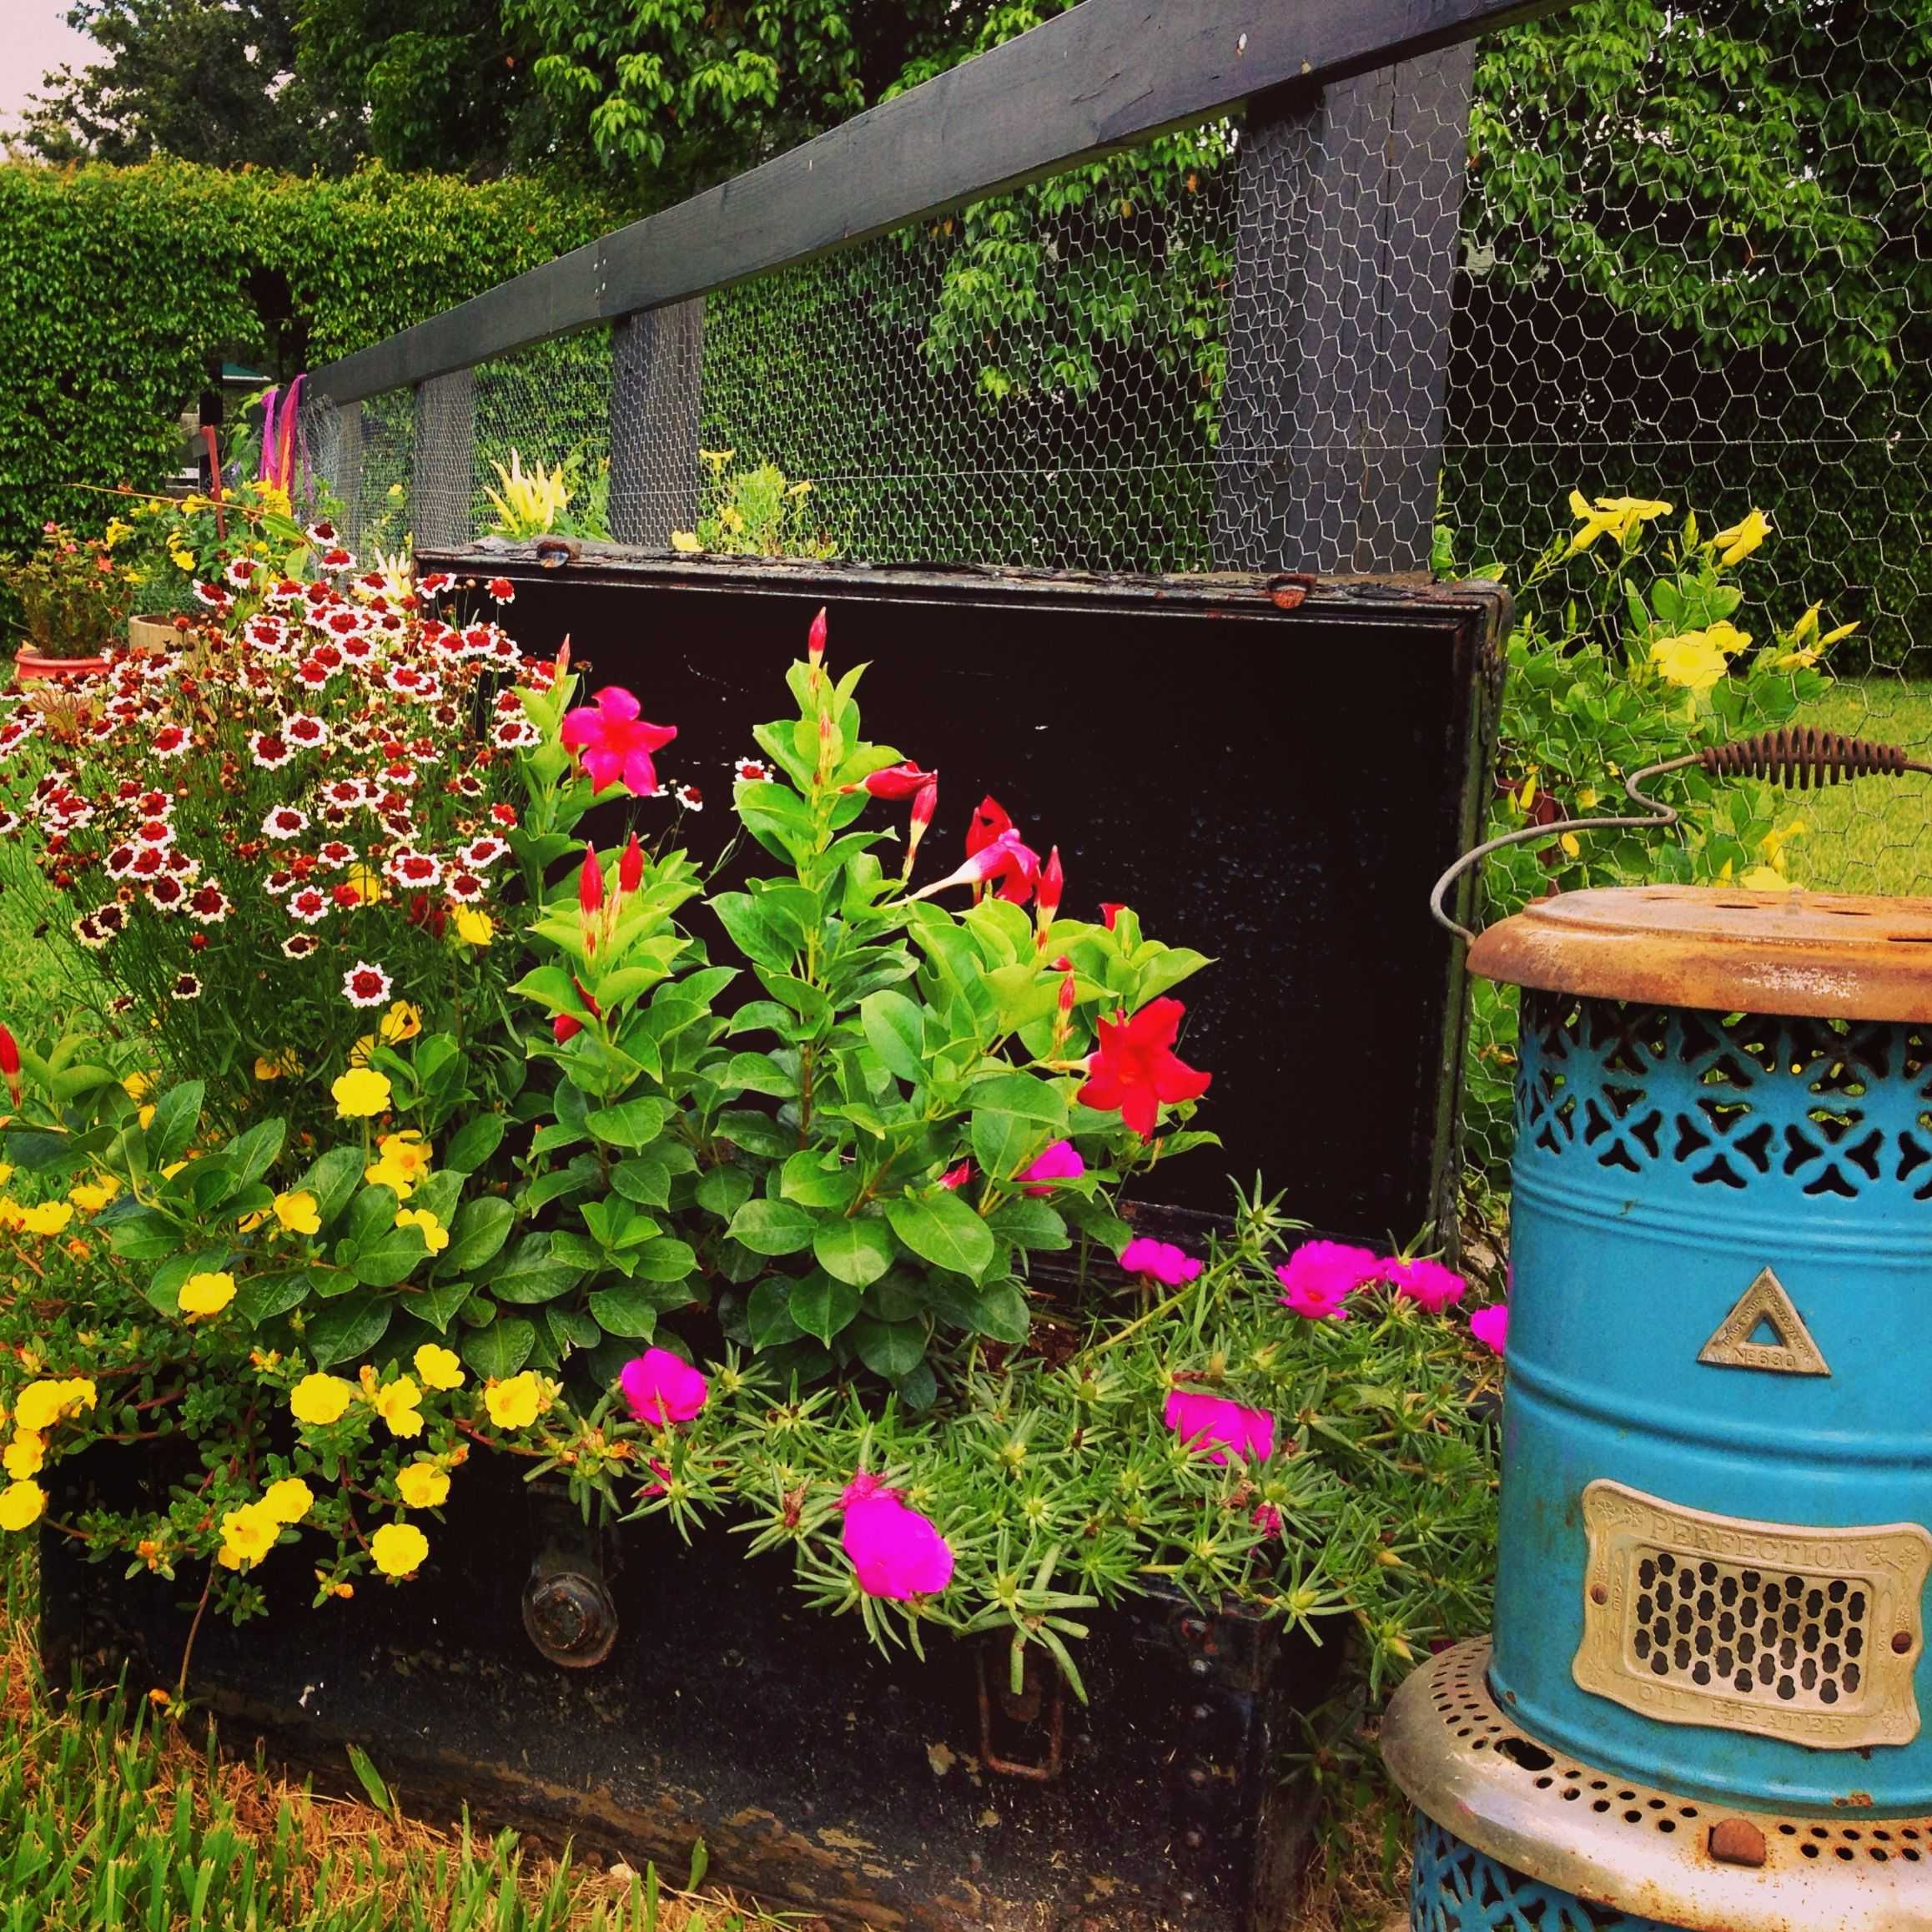 22 Incredible Budget Gardening Ideas: Upcycled Trunk Turned In To Beautiful Planter.